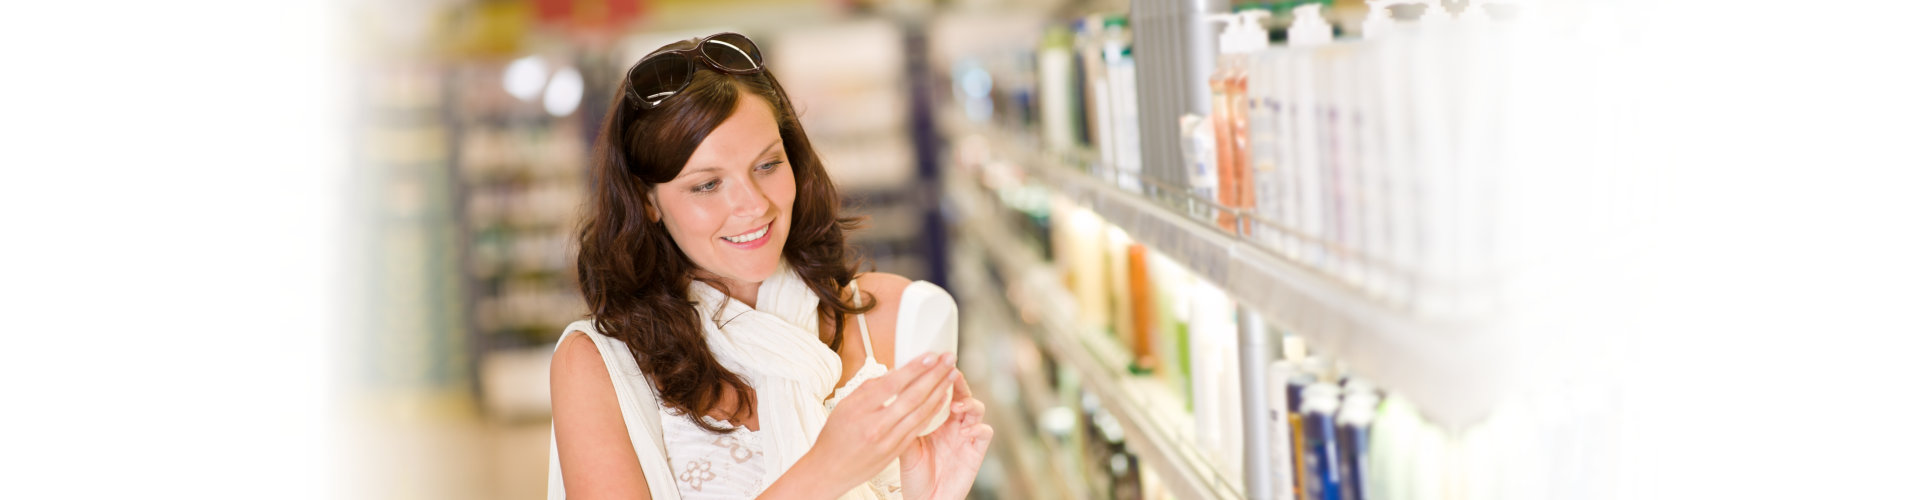 customer looking at products at a pharmacy